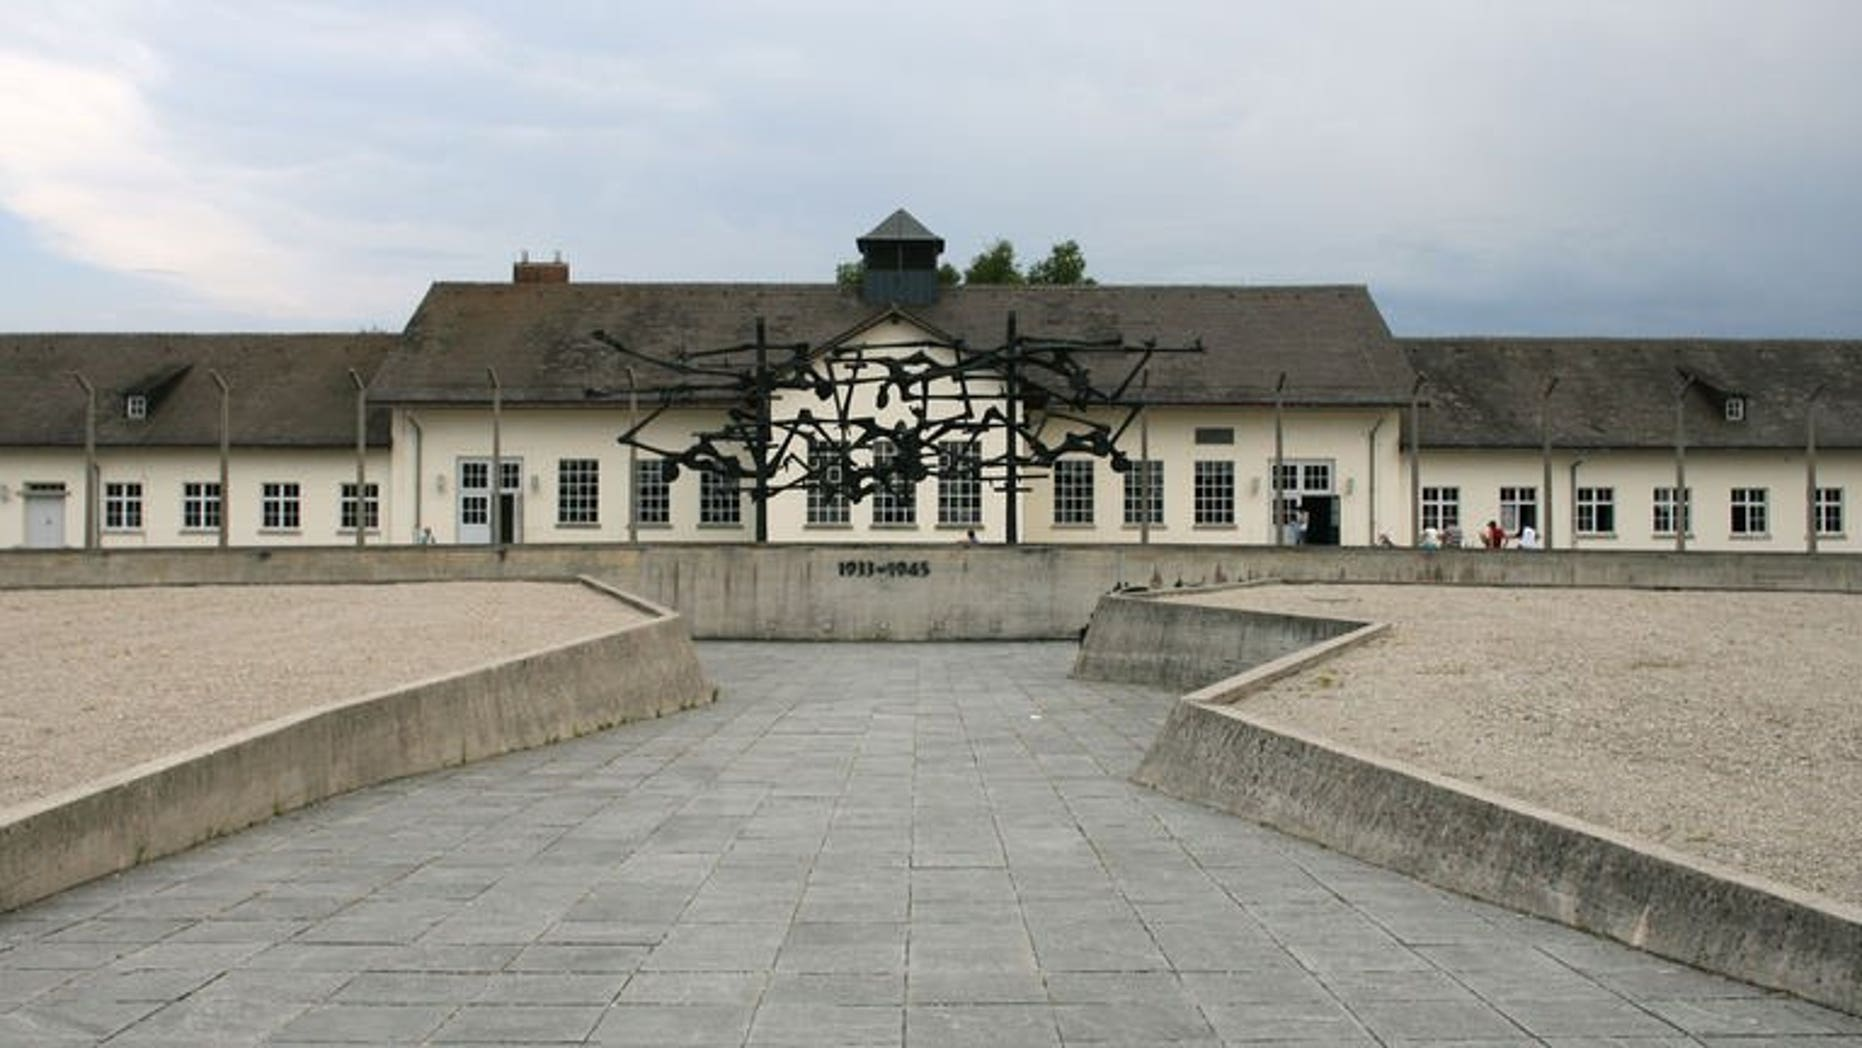 The International Memorial museum at the former Nazi concentration camp of Dachau, southern Germany, pictured on July 6, 2006. Angela Merkel will become the first German chancellor to visit the former Nazi concentration camp Dachau next week, her spokesman said Wednesday.